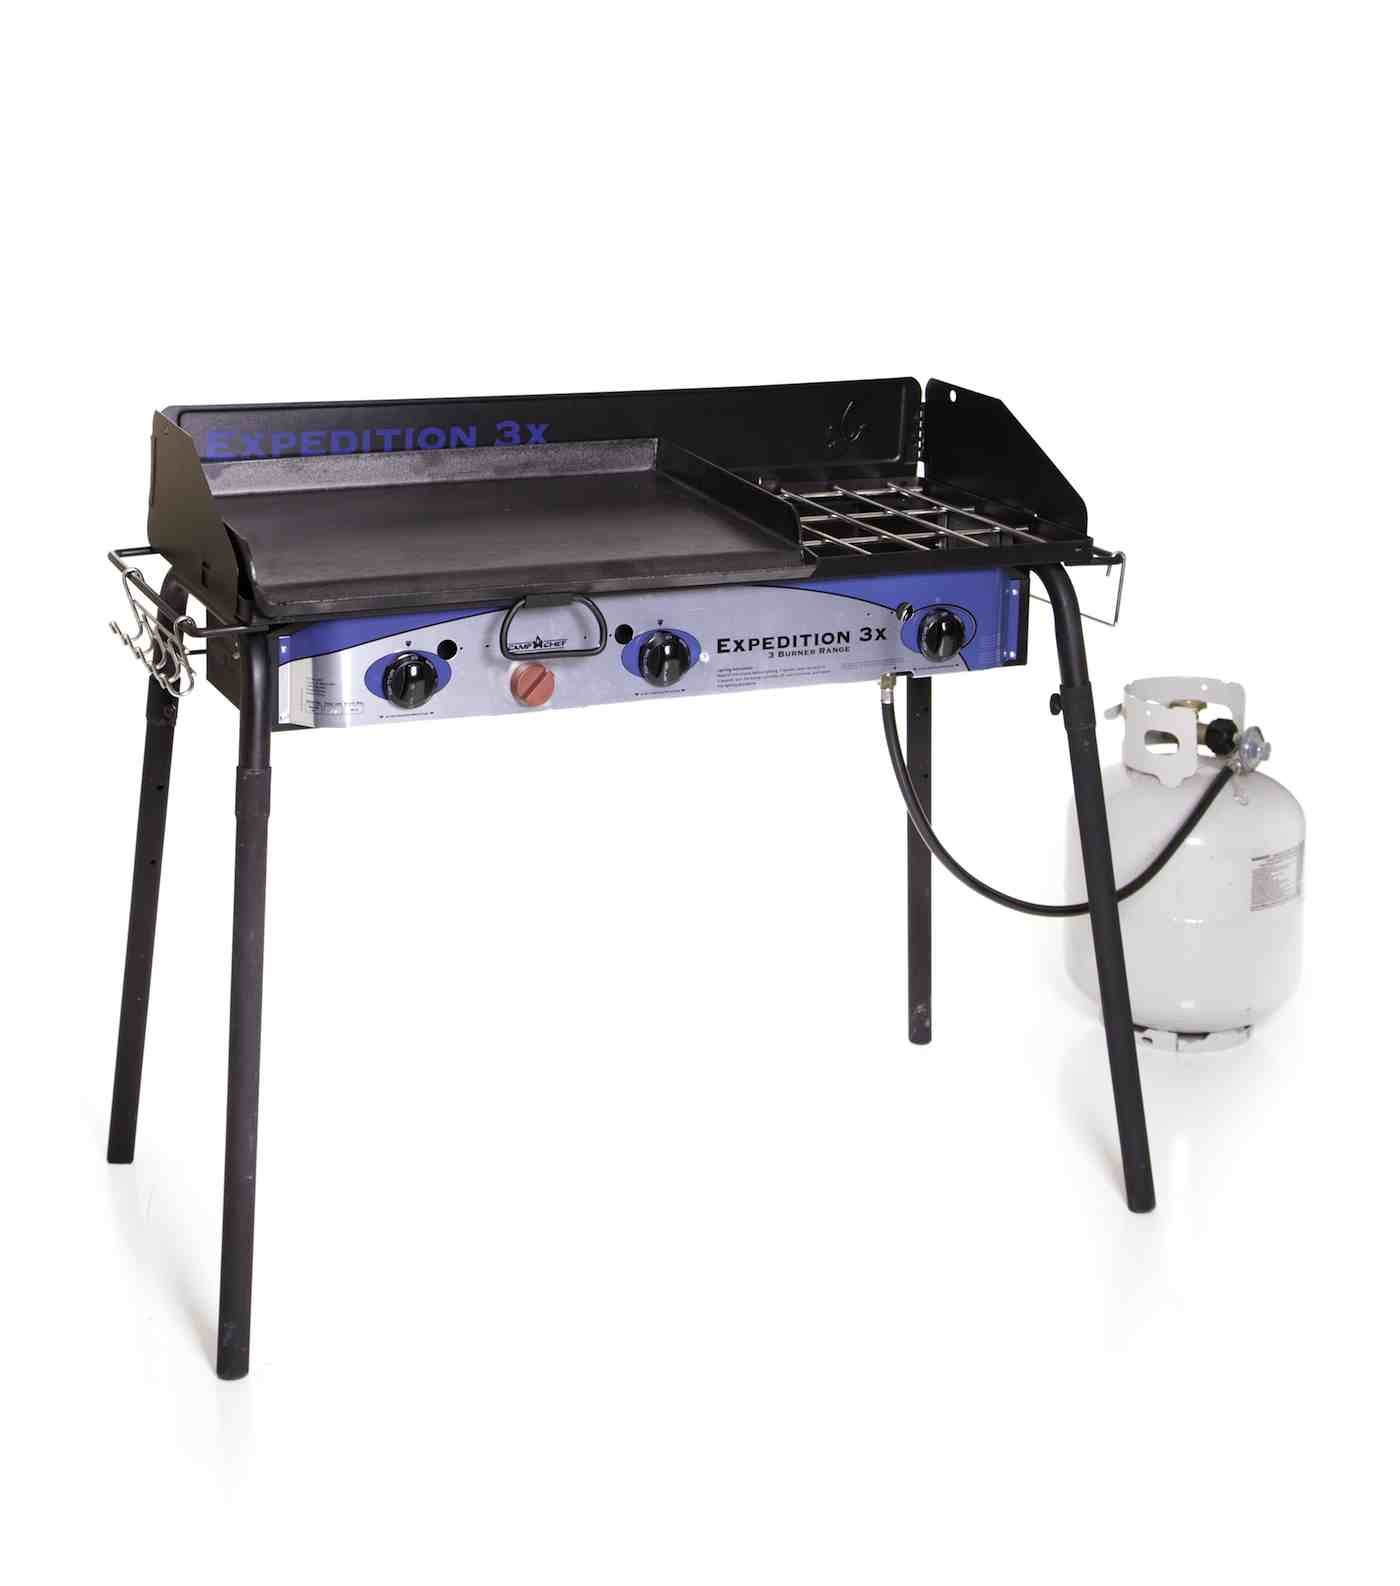 Camp Chef Expedition 3X Triple Burner Stove w/Griddle by Camp Chef